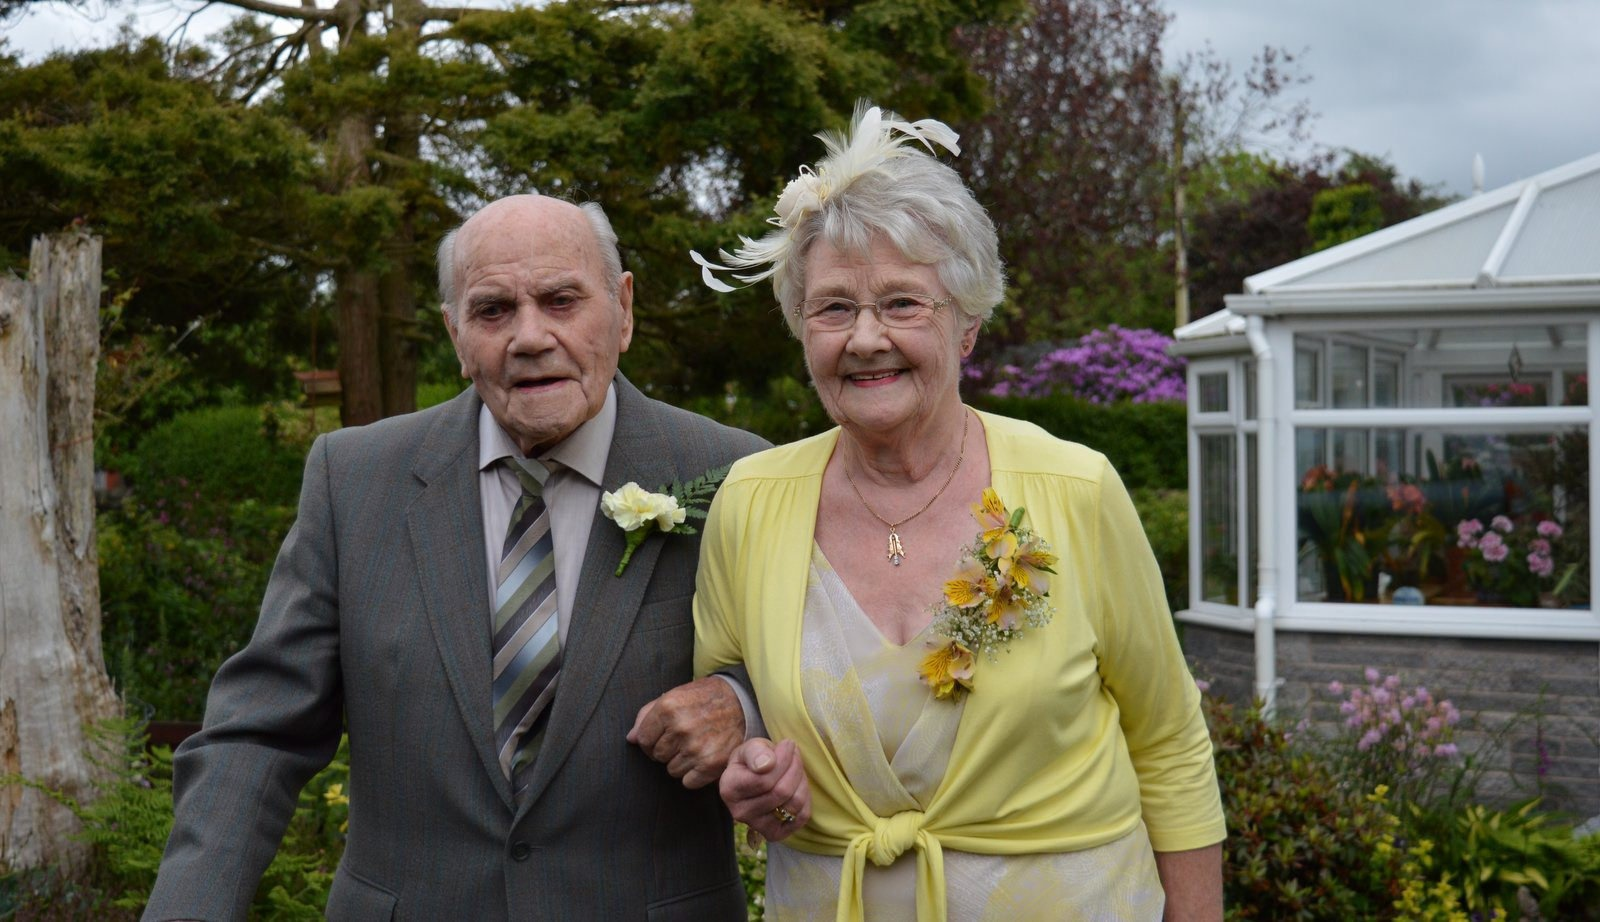 Best man Dan Clements and his wife Heather Dodds at the wedding of life long friend Sandy Little and his wife Sue Little. See Centre Press story CPBESTMAN; A centenarian has been officially recognised as the oldest best man at a wedding - at the age of 102. Farmer Dan Clement - who is only SEMI-retired - broke the world record after organising a stag do that involved drinking shots of whisky. He also had wedding guests in stitches with a traditionally funny speech featuring a series of jokes about a ploughman and his cows. Dan agreed to the honour for lifelong friend, Alex 'Sandy' Little, and his bride Sue, who got married in June.